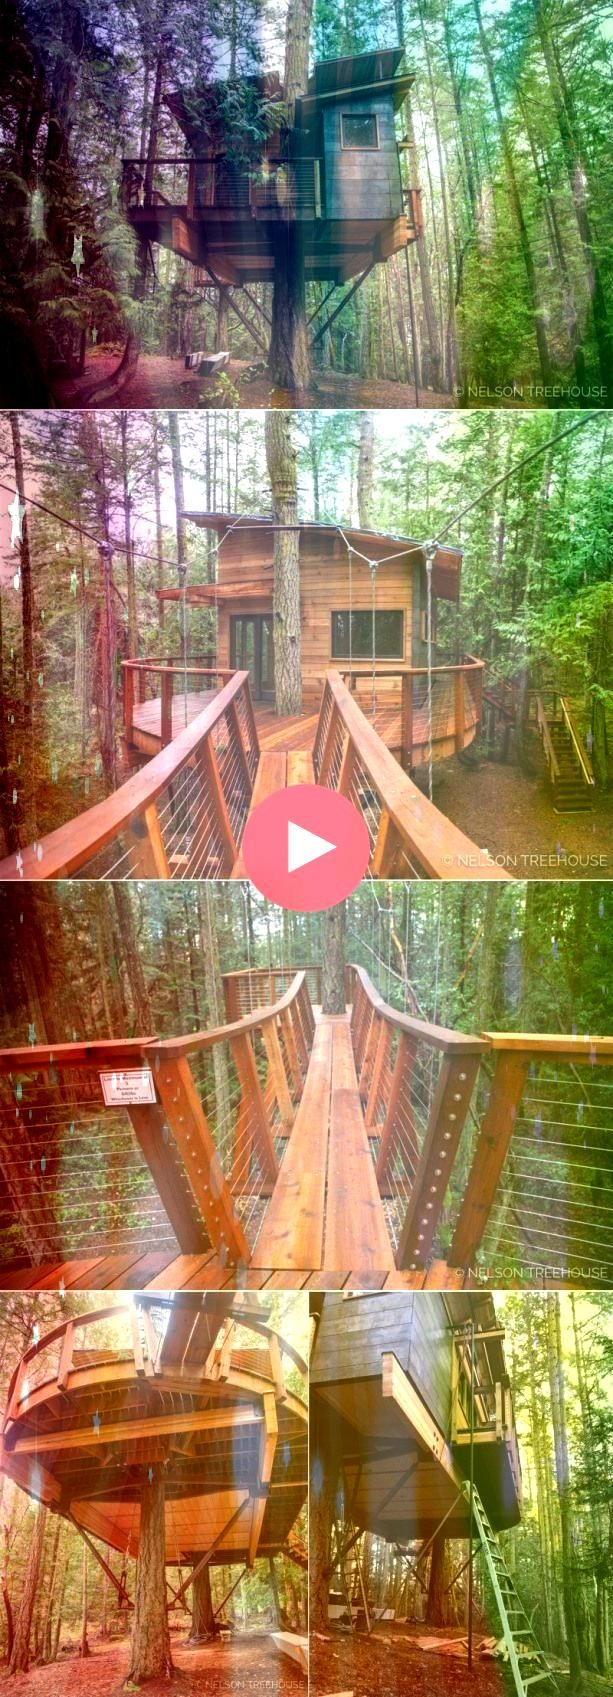 treehouse has a total of 415squarefeet floor space including the loft acce The treehouse has a total of 415squarefeet floor space including the loft acce The treehouse ha...